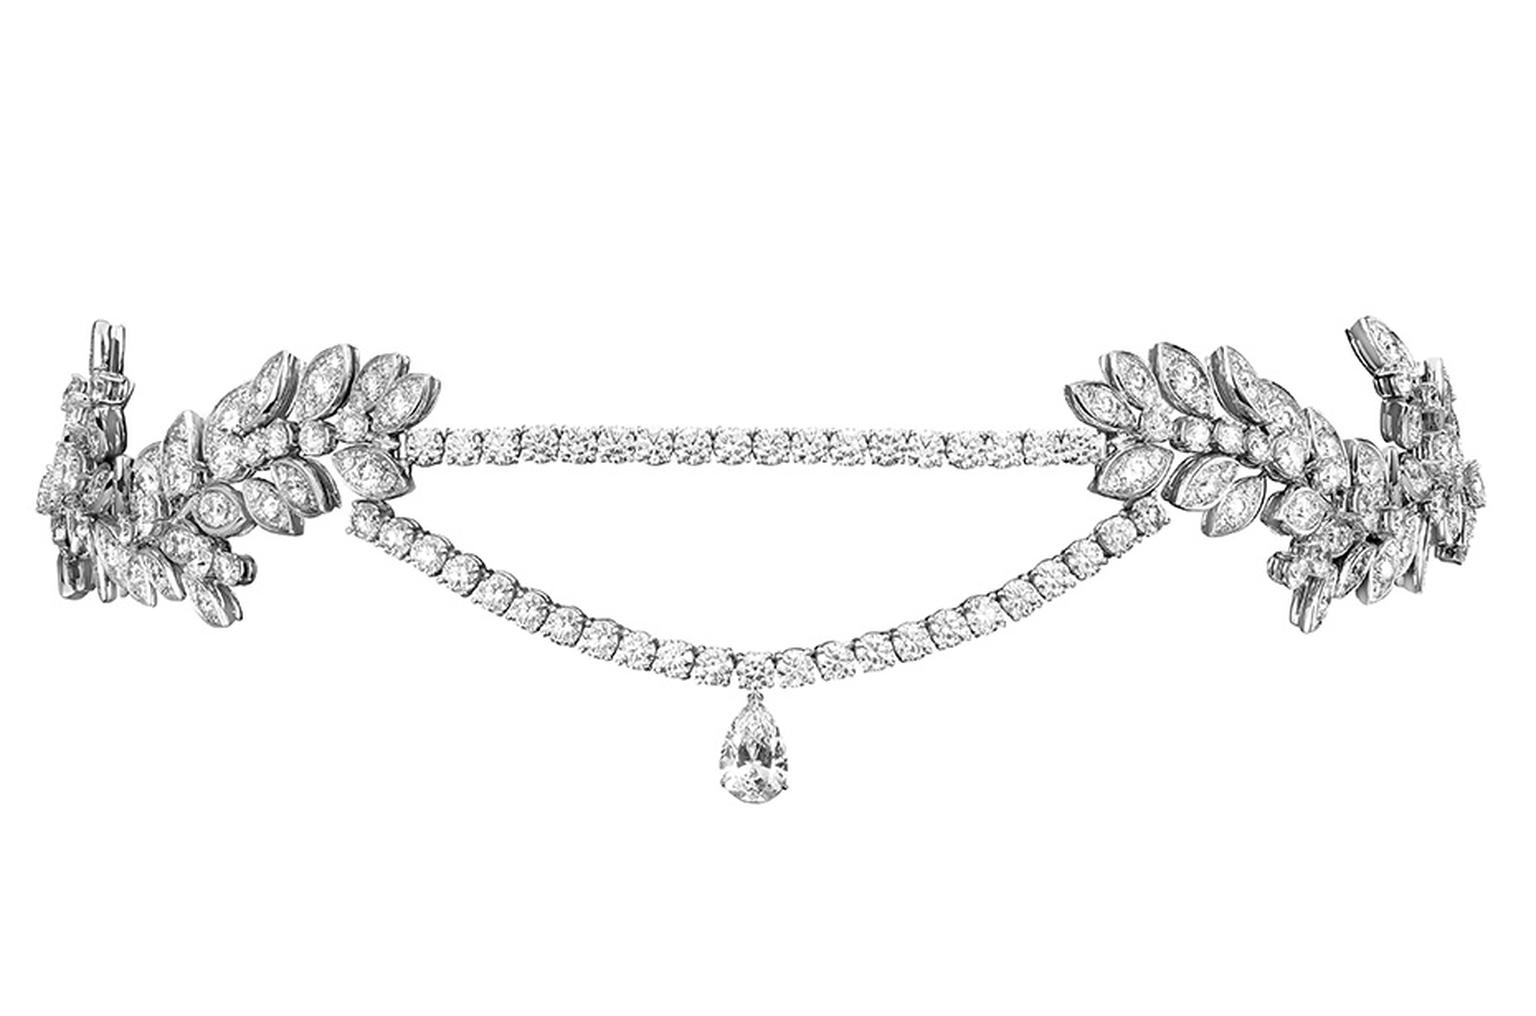 One-of-a-kind Piaget Rose Passion headband in white gold with brilliant-cut diamonds a pear-shaped diamond